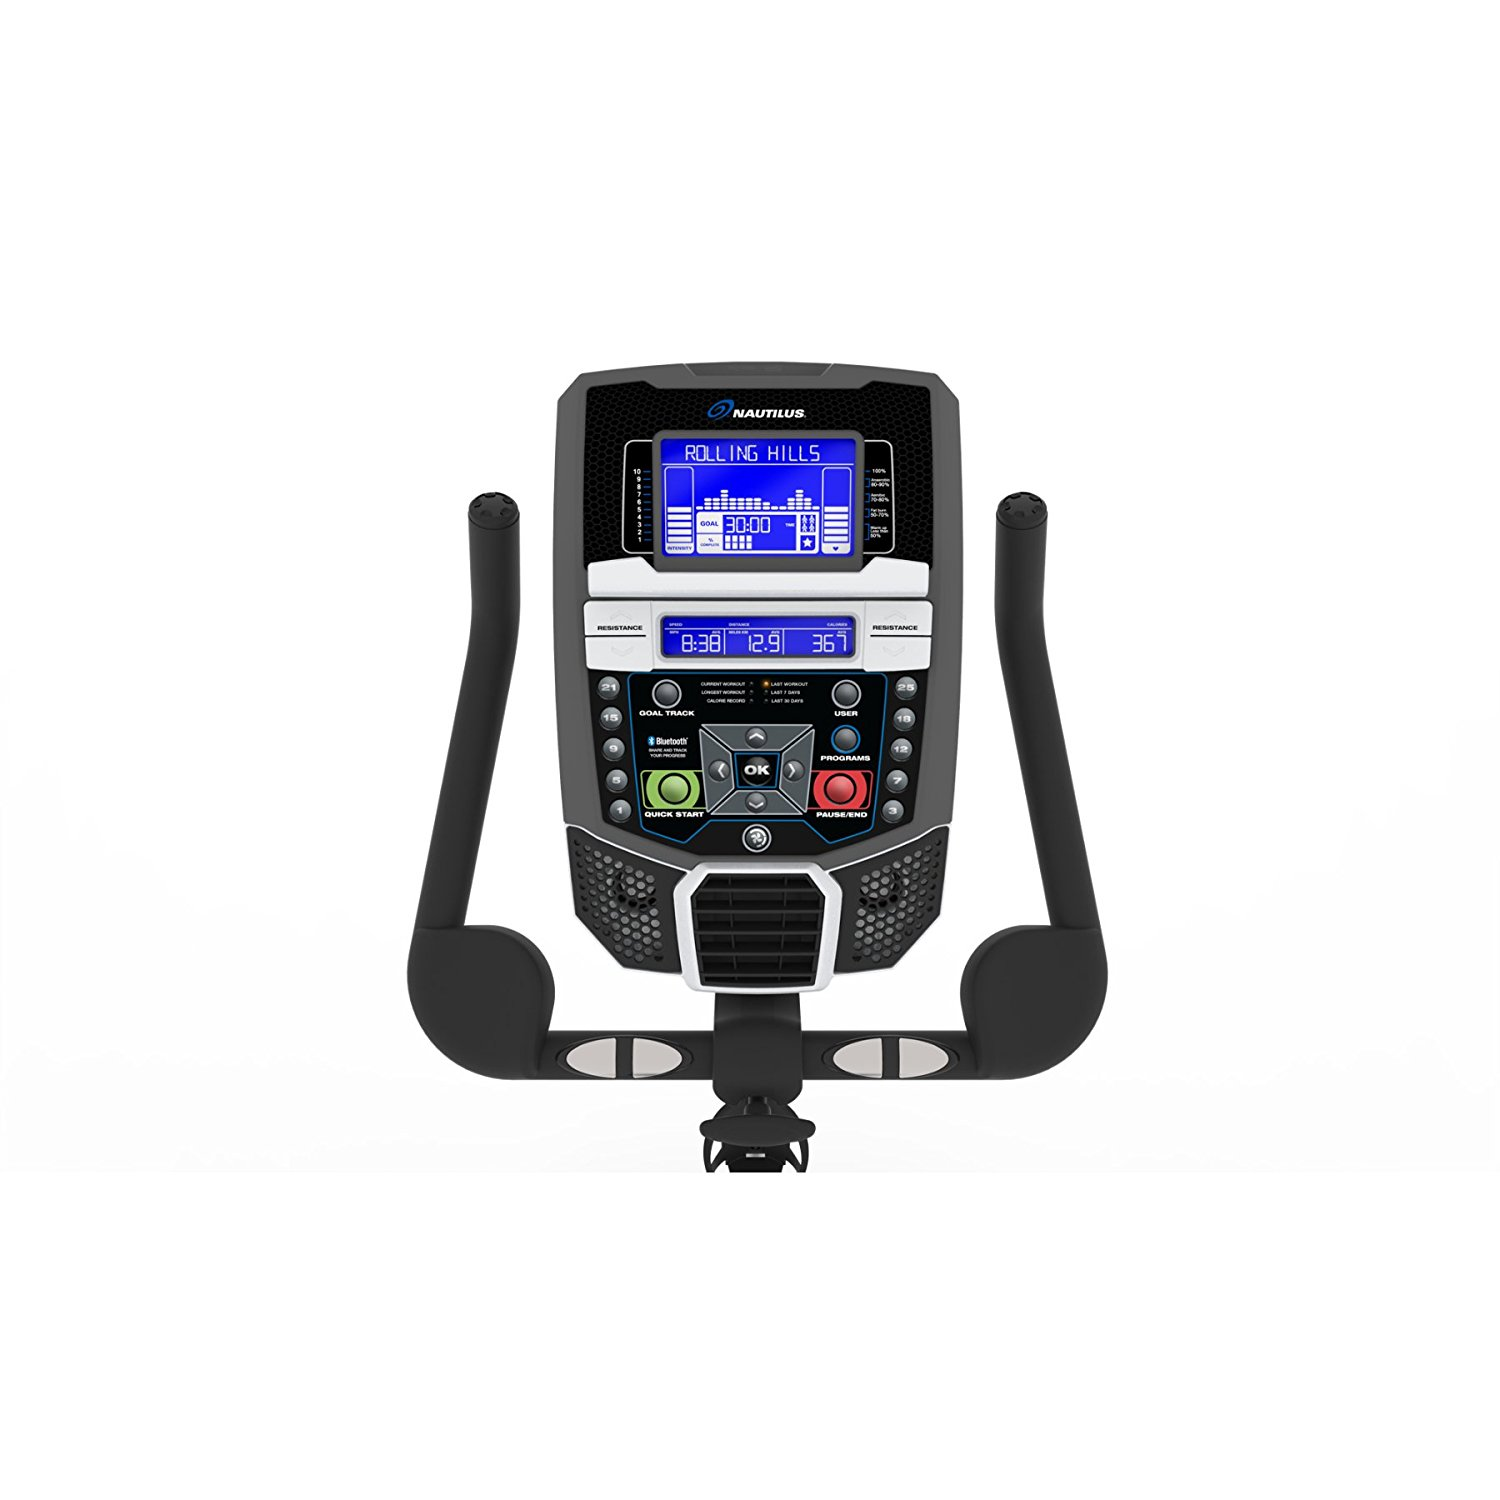 Nautilus U616 Console With Built in Workout Programs and Wireless Heart Rate